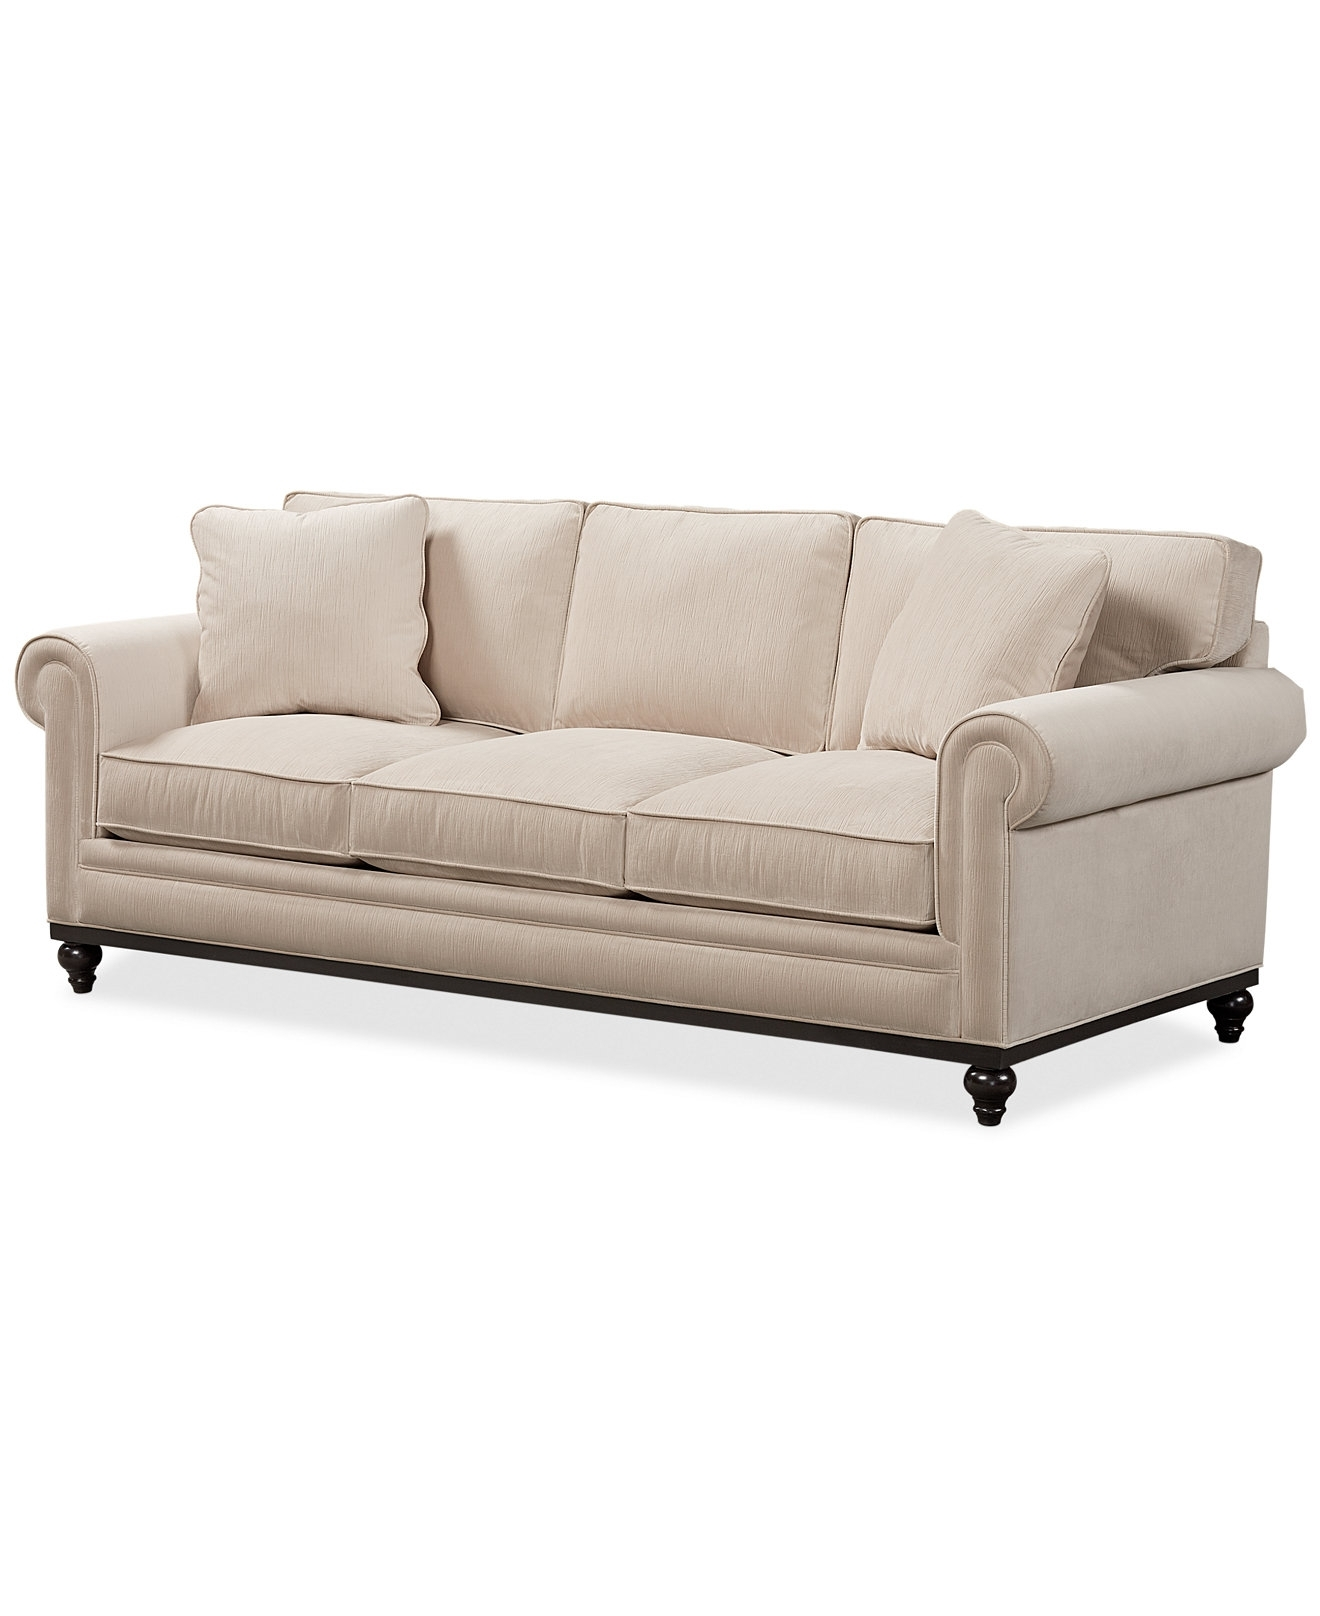 Martha Stewart Collection New Club Fabric Roll Arm Sofa – Couches Pertaining To Widely Used Chaise Lounge Chairs At Macy's (View 10 of 15)